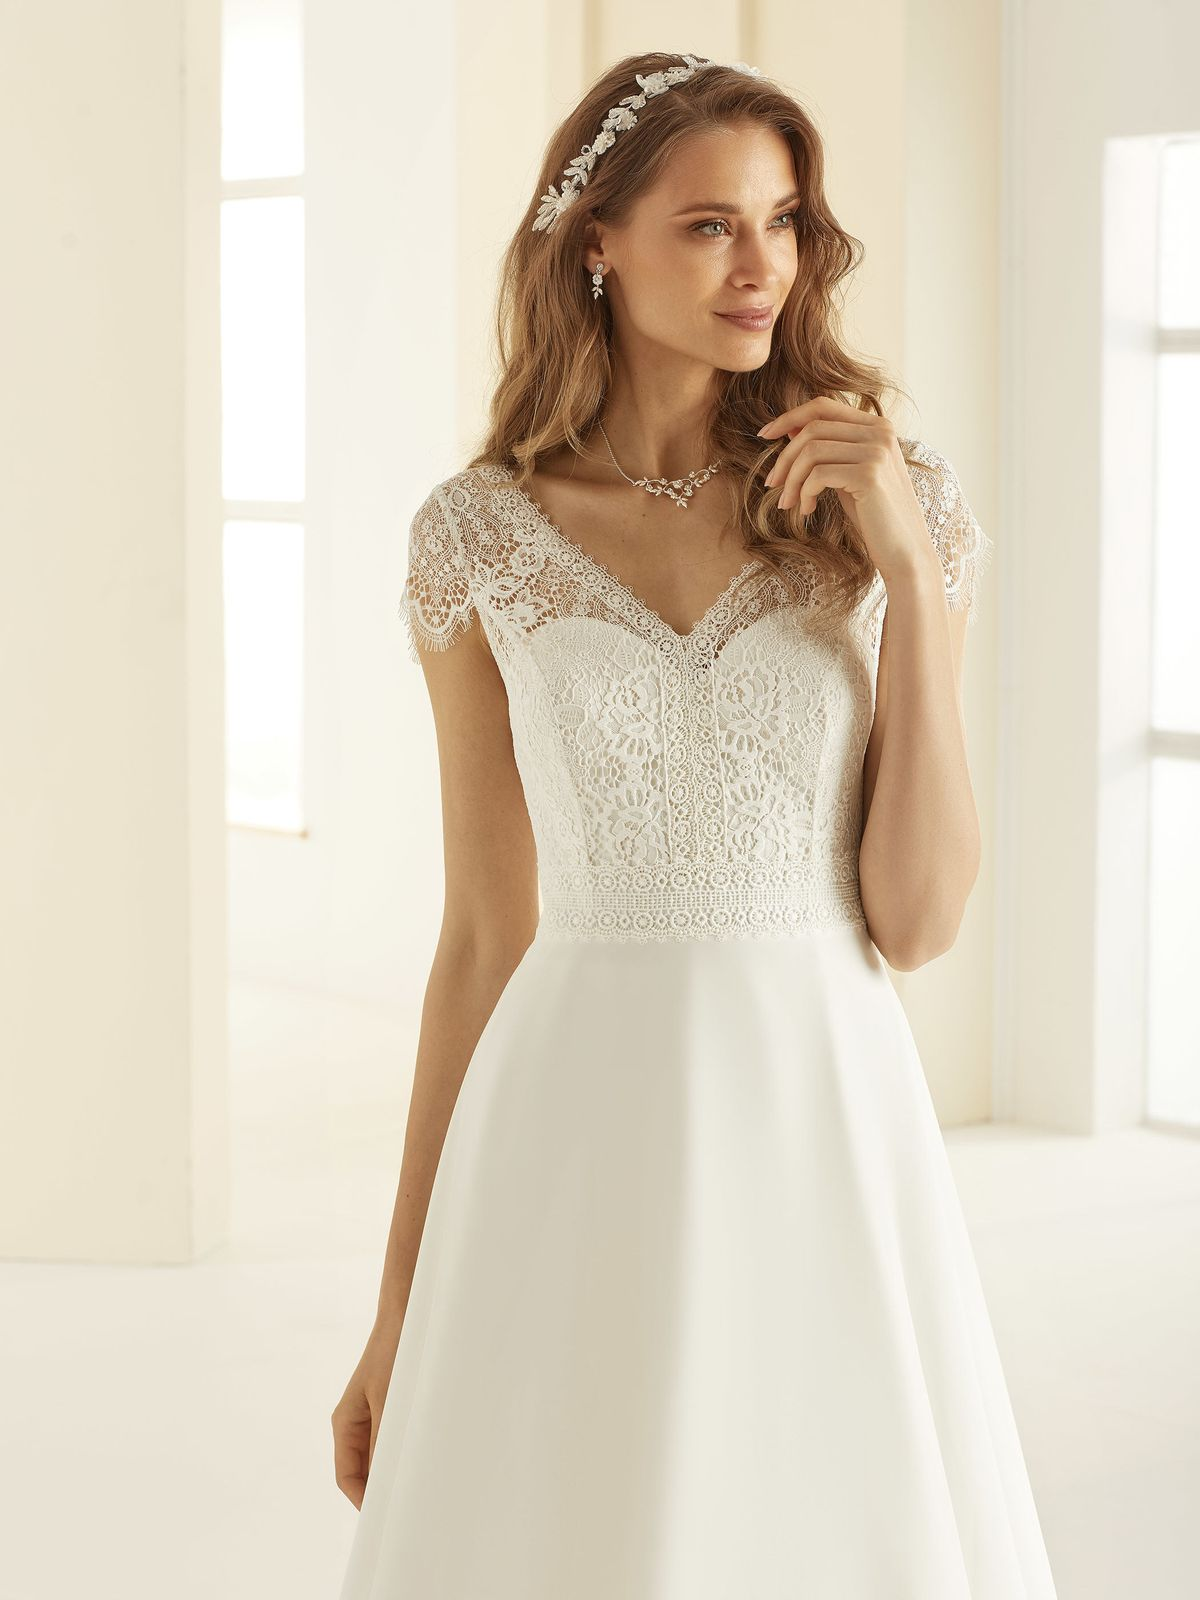 bianco-evento-bridal-dress-natalie-_2__2